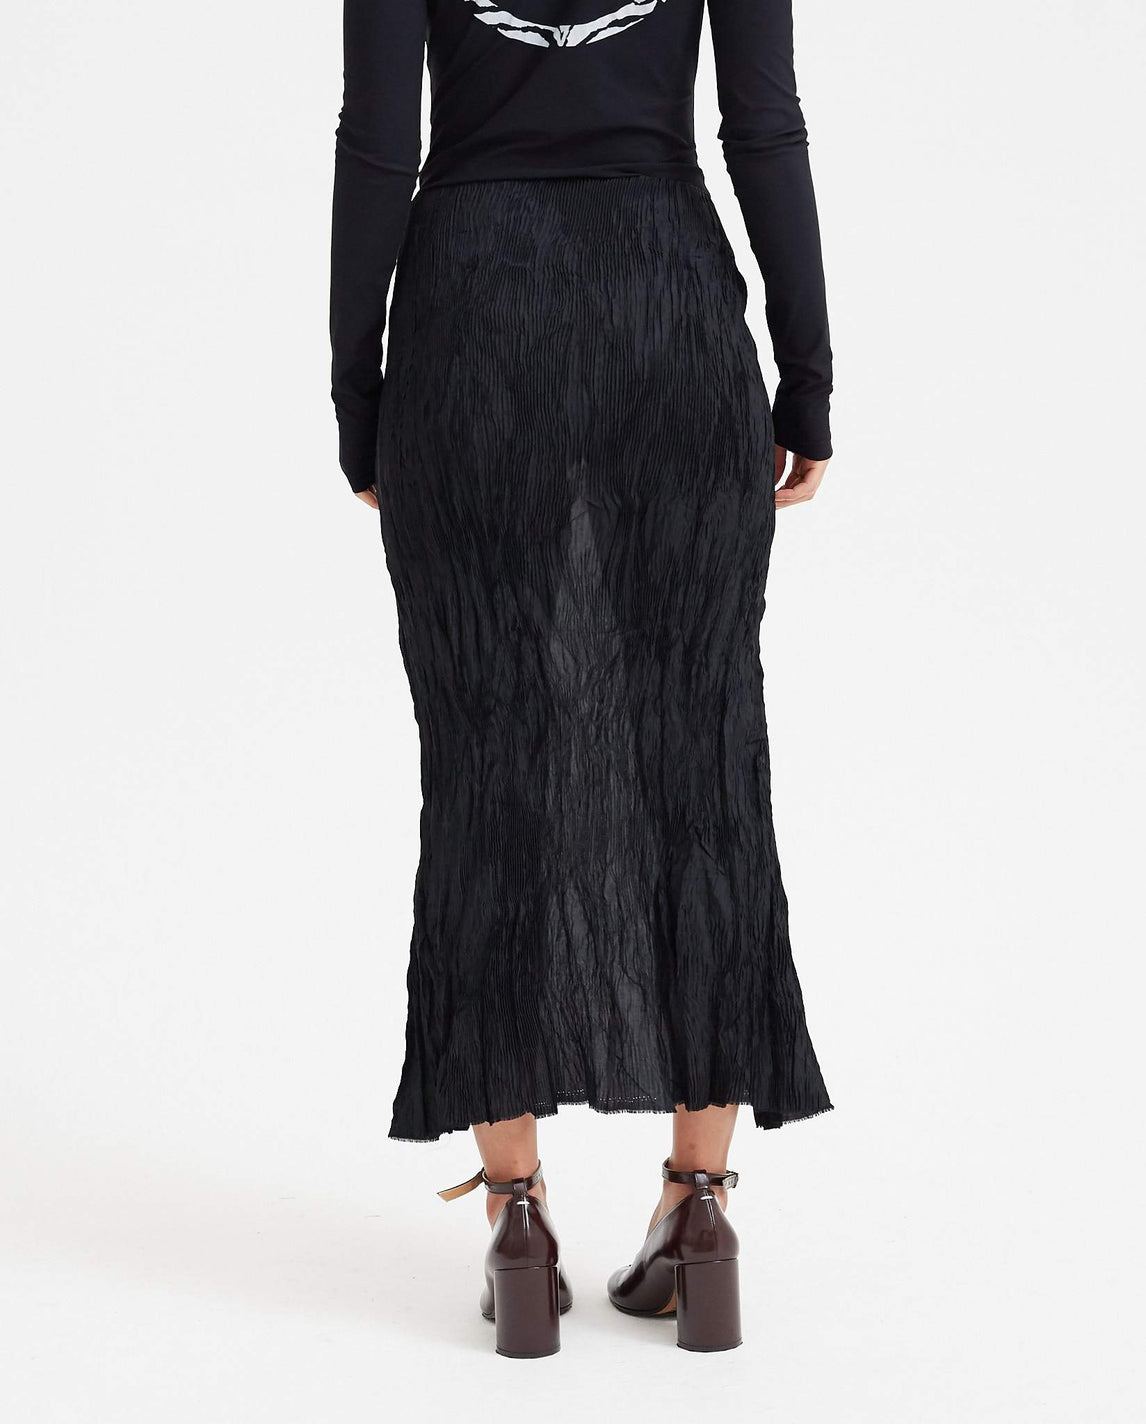 Fortune Skirt - Coal Black UNISEX SAMUEL GUI YANG